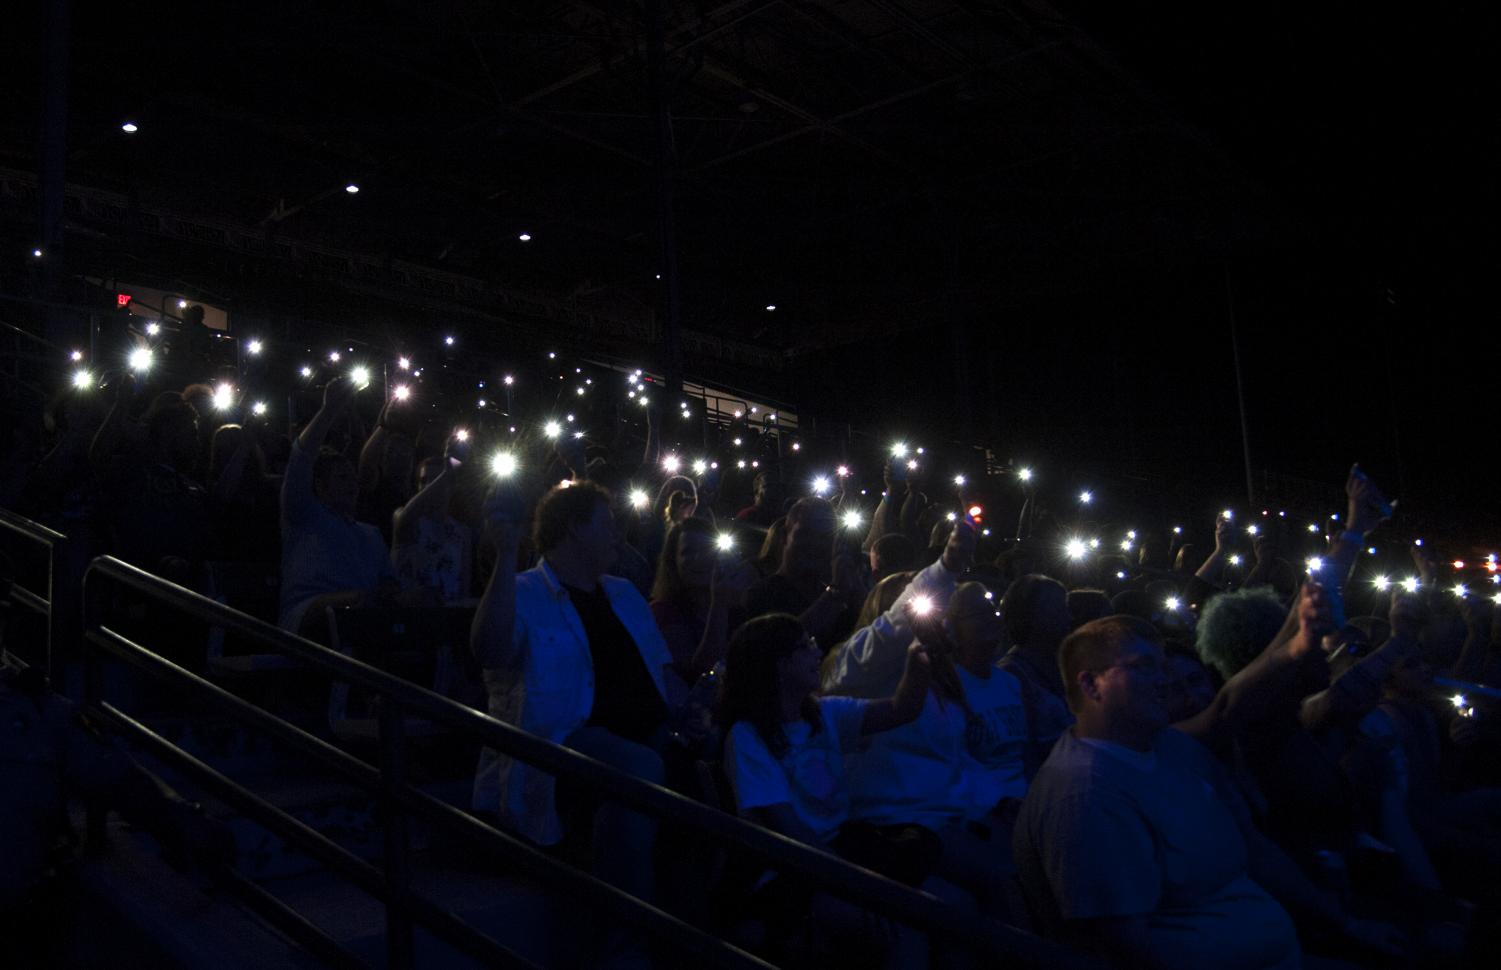 Audience+members+hold+up+cellphone+flashlights+and+lighters+during+a+love+song+sung+by+Ryan+Cabrera%2C+Thursday%2C+Aug.+30%2C+2018+at+the+Grandstand+stadium+during+the+Du+Quoin+State+Fair.